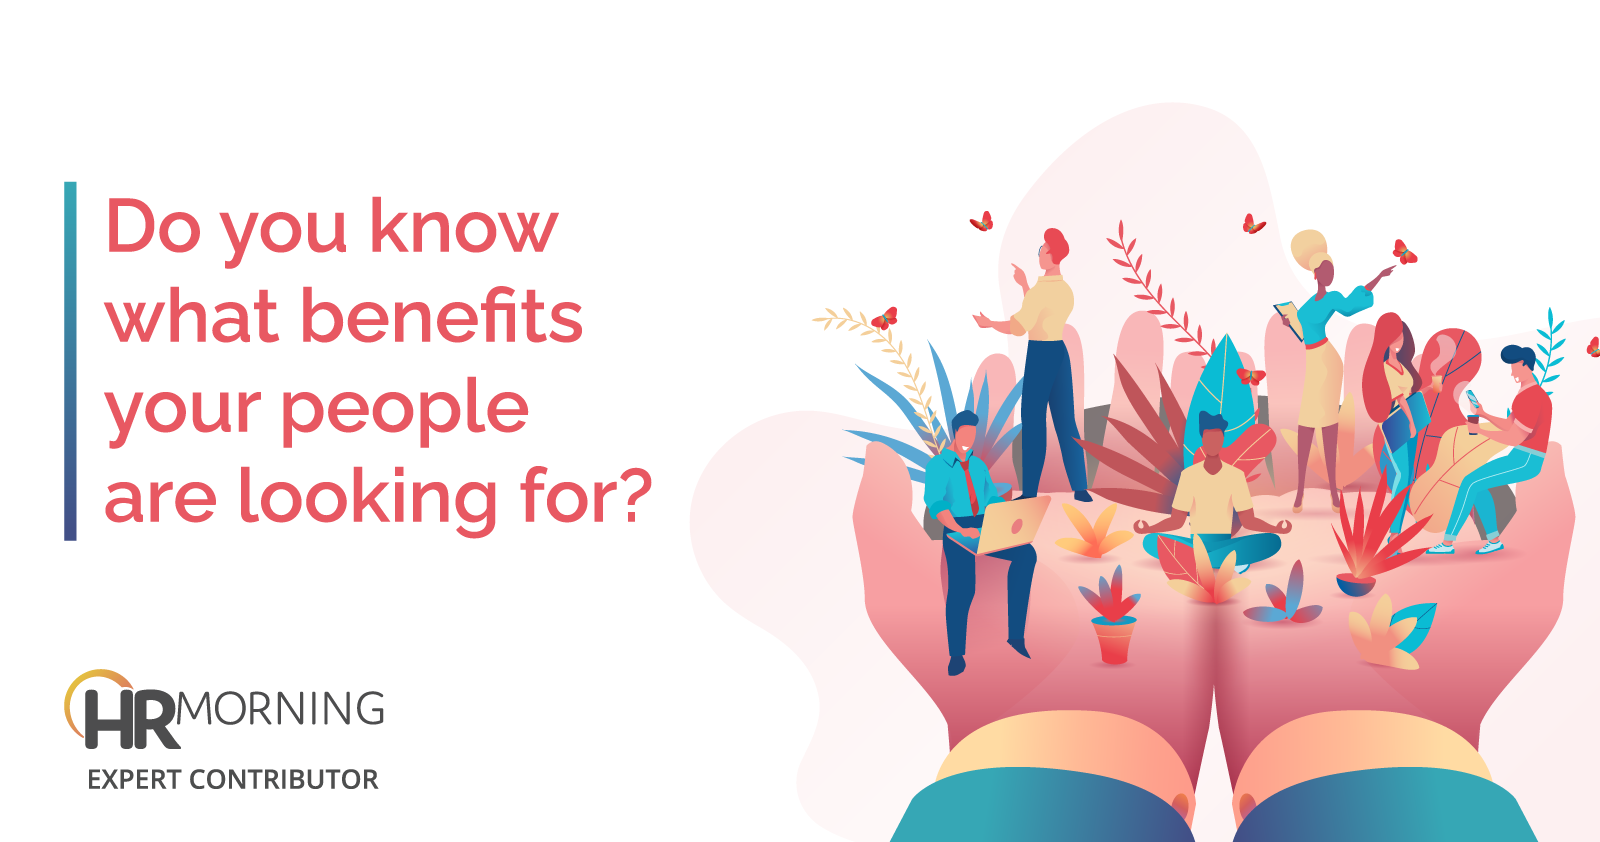 do you know what benefits your people are looking for